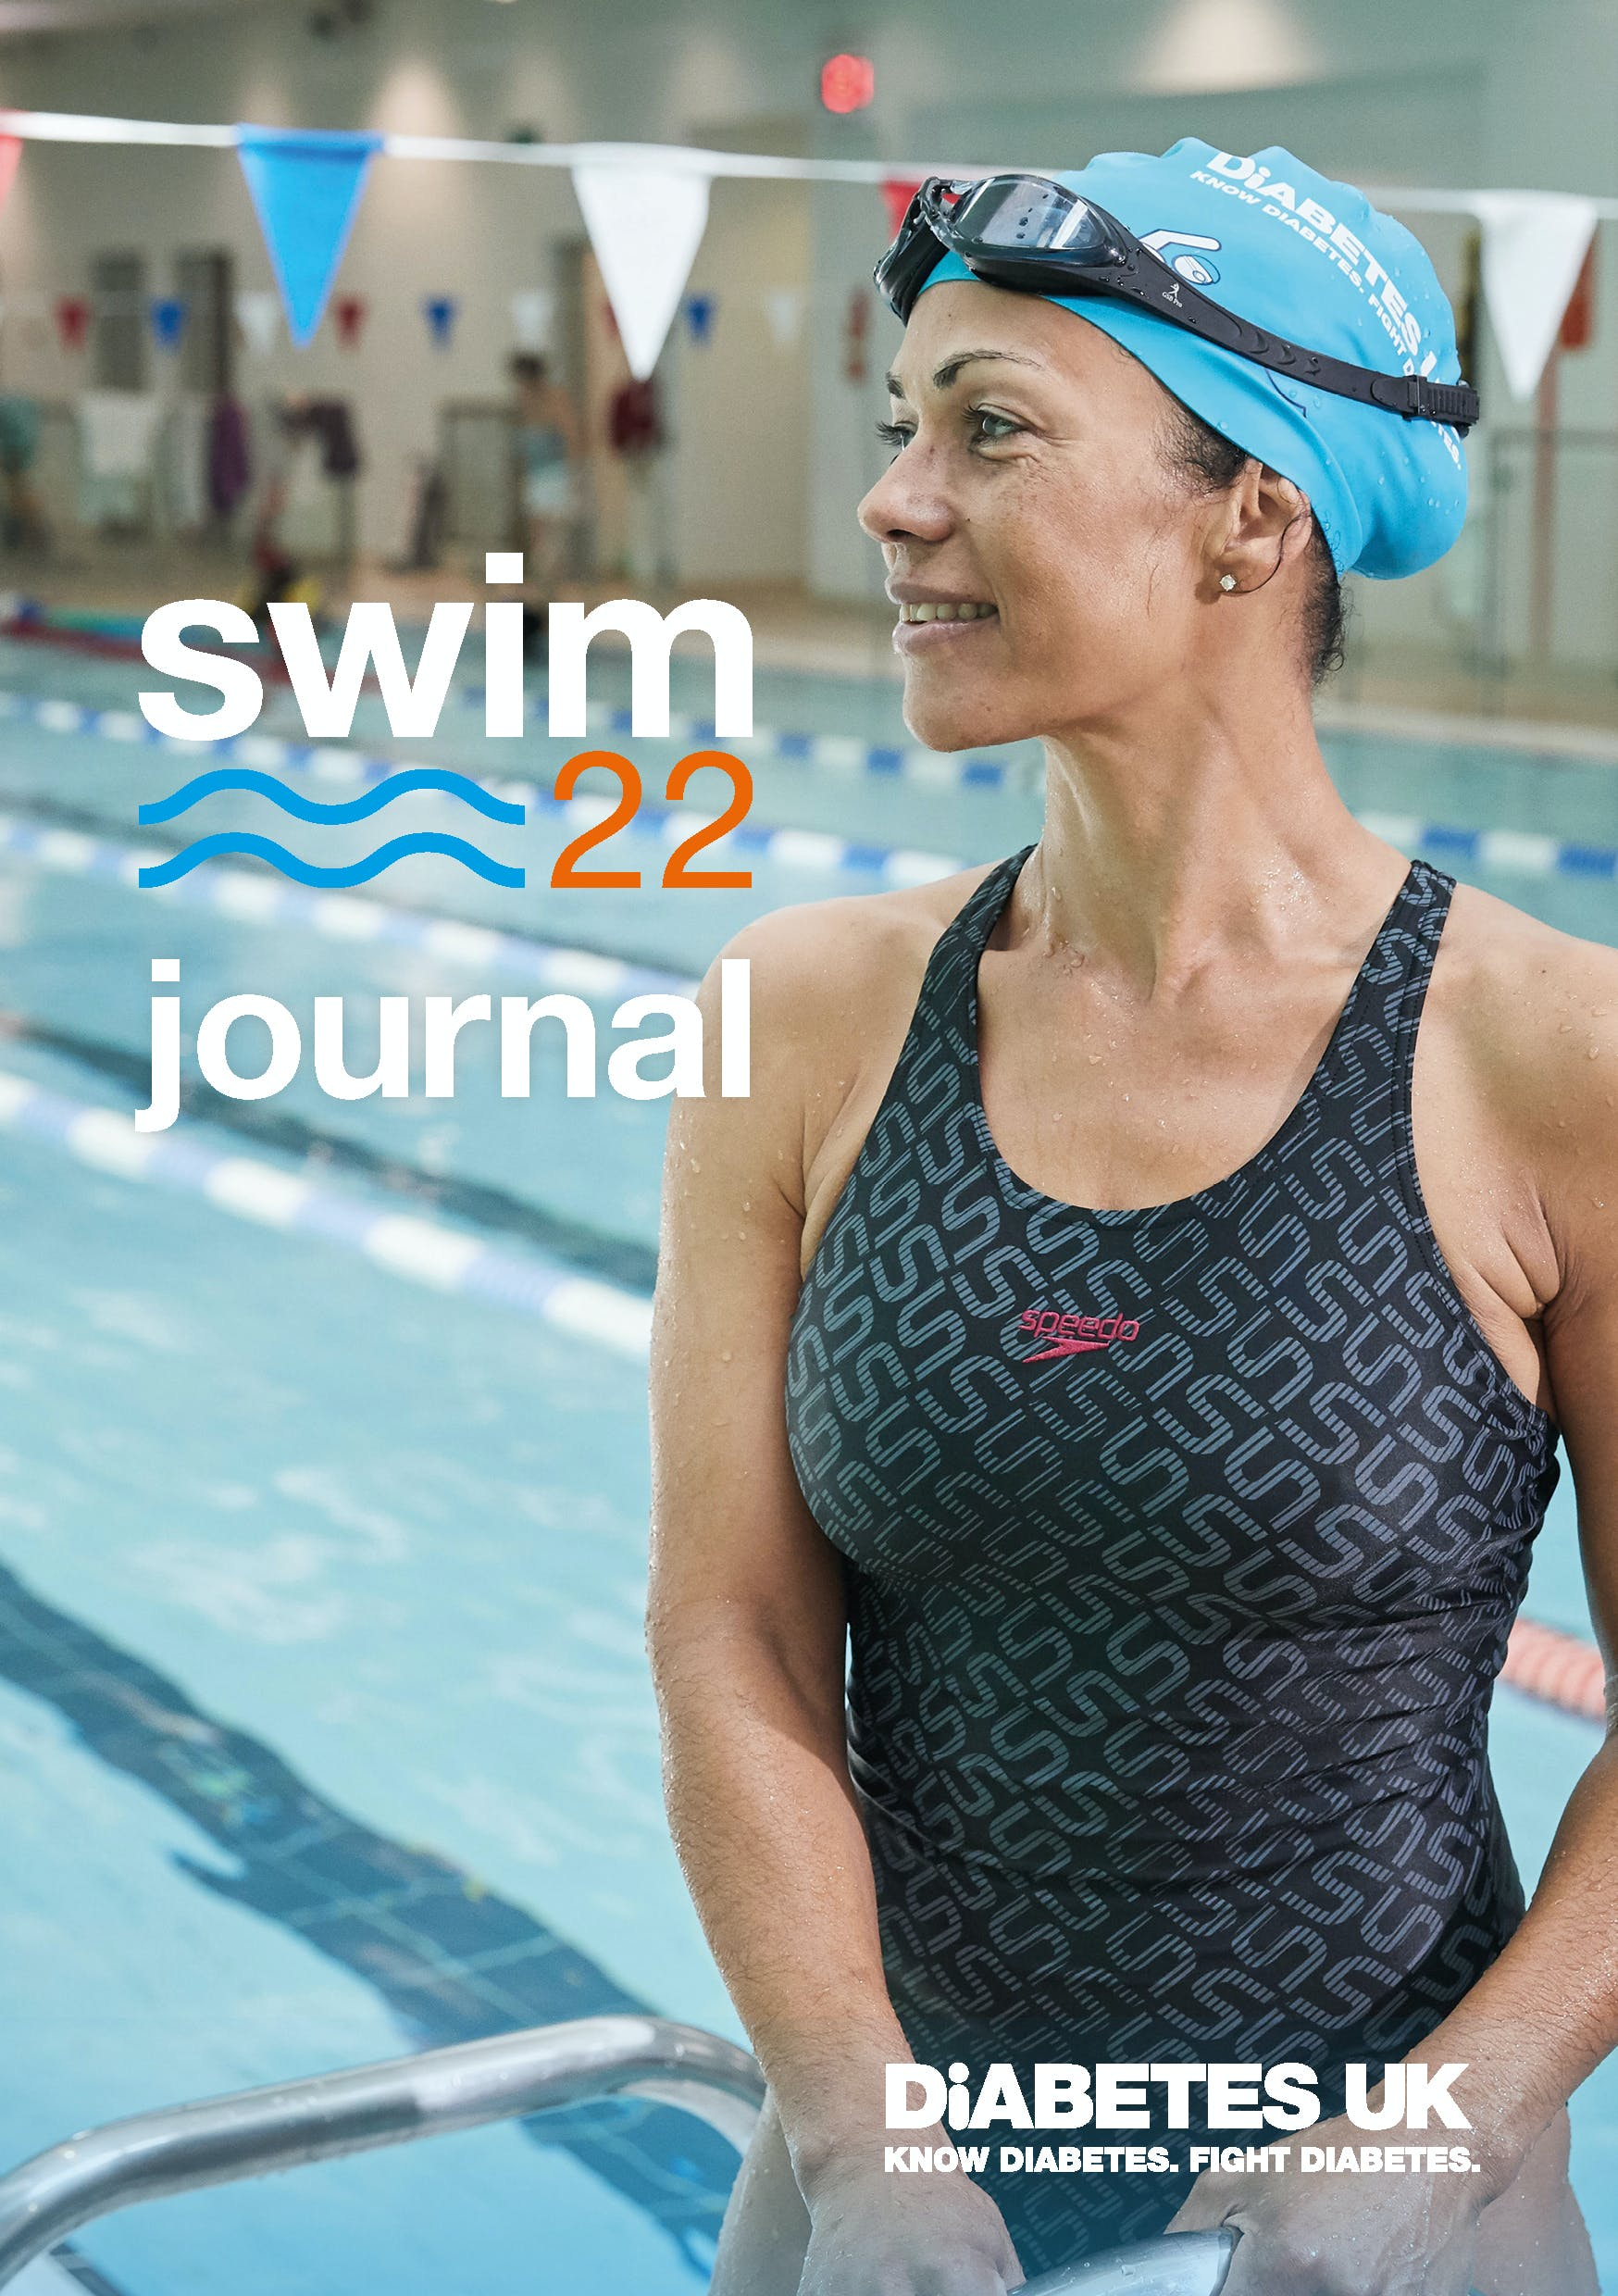 Swim22 Journal